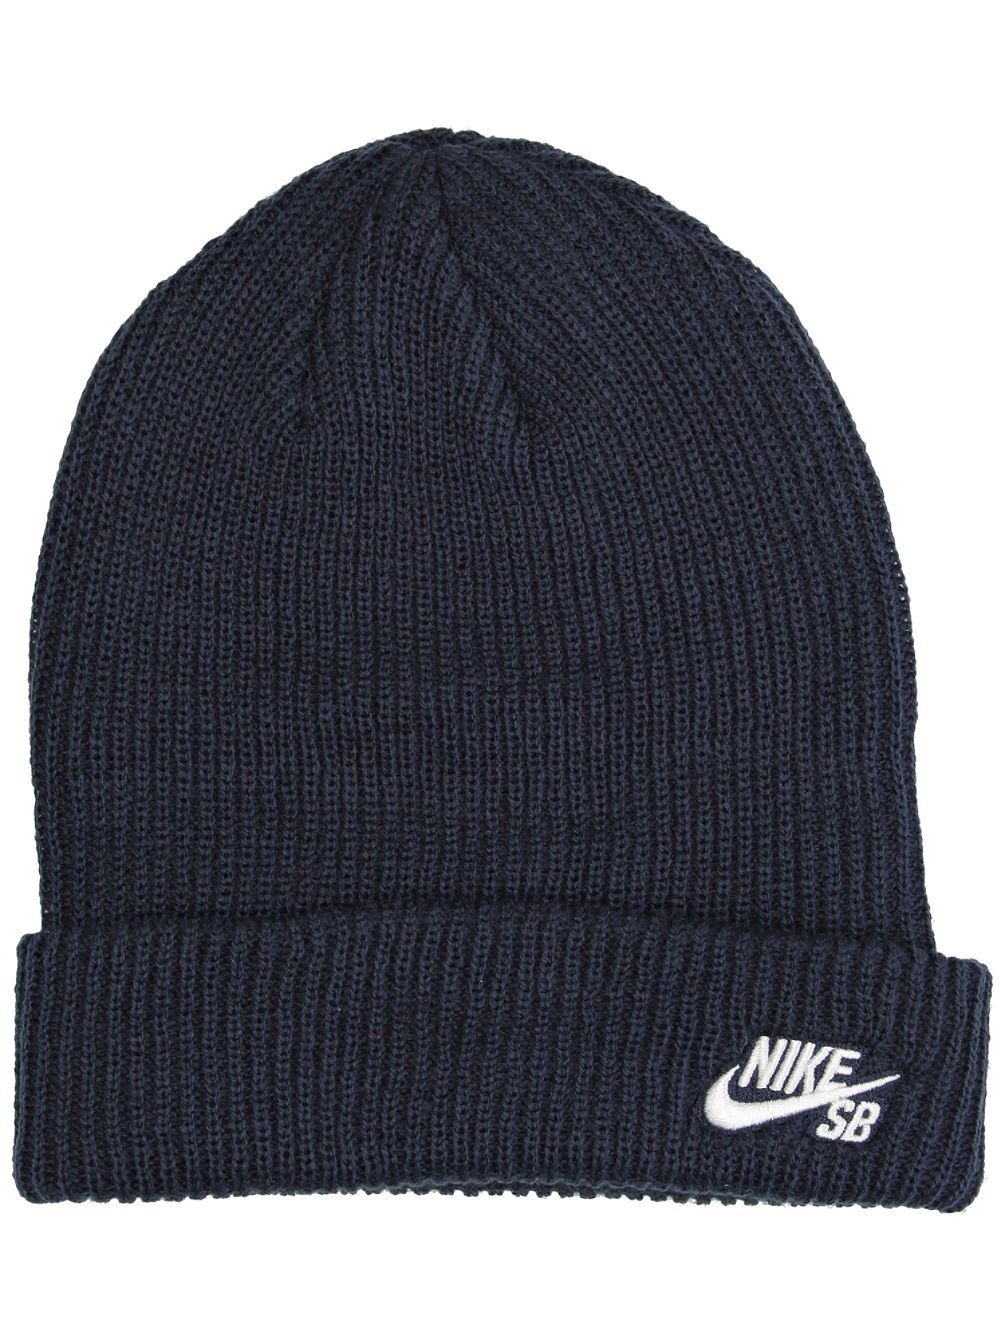 info for 47f27 8c53d Buy Nike Fisherman Beanie online at Blue Tomato